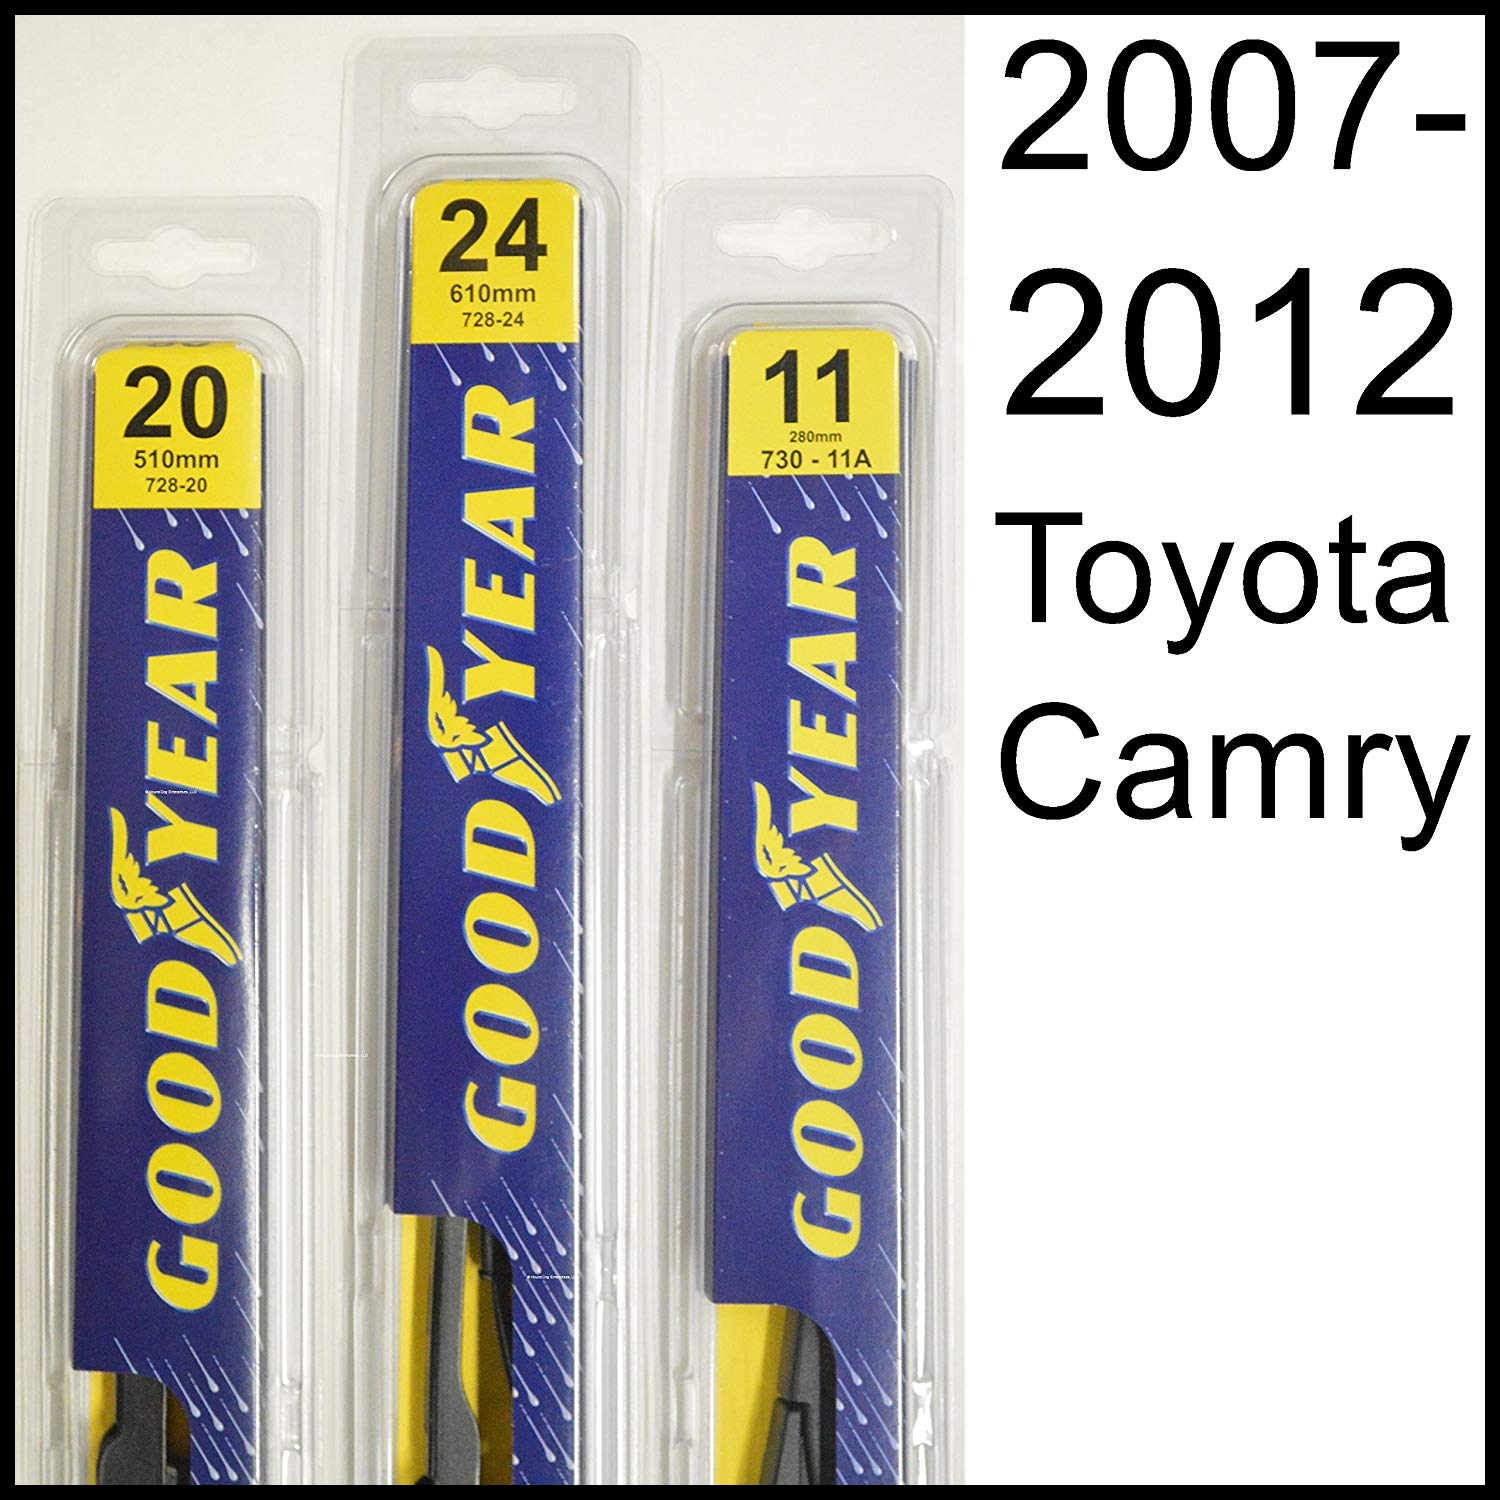 "Amazon Toyota Camry 2007 2012 Wiper Blade Kit Set Includes 24"" Driver Side 20"" Passenger Side 2 Blades Total Automotive"